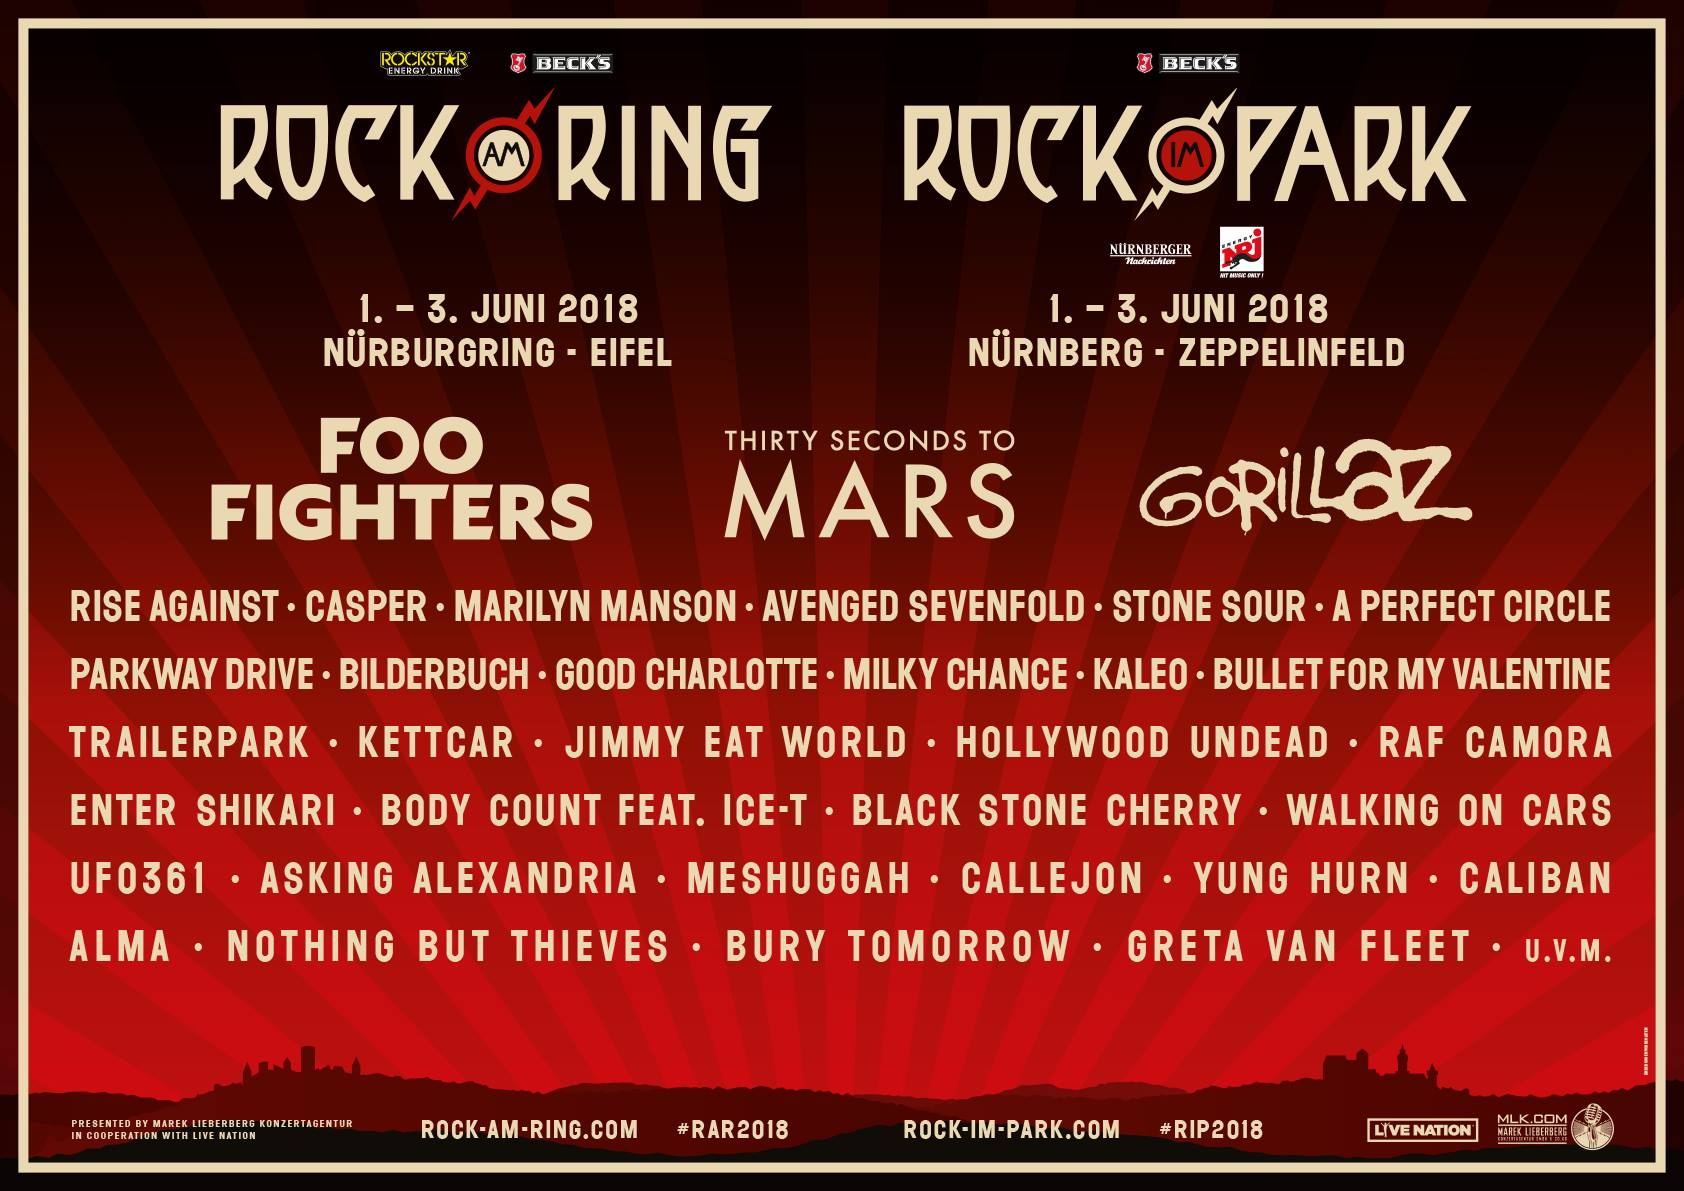 Rock am Ring & Rock im Park Reveal Huge 2018 Lineup ...